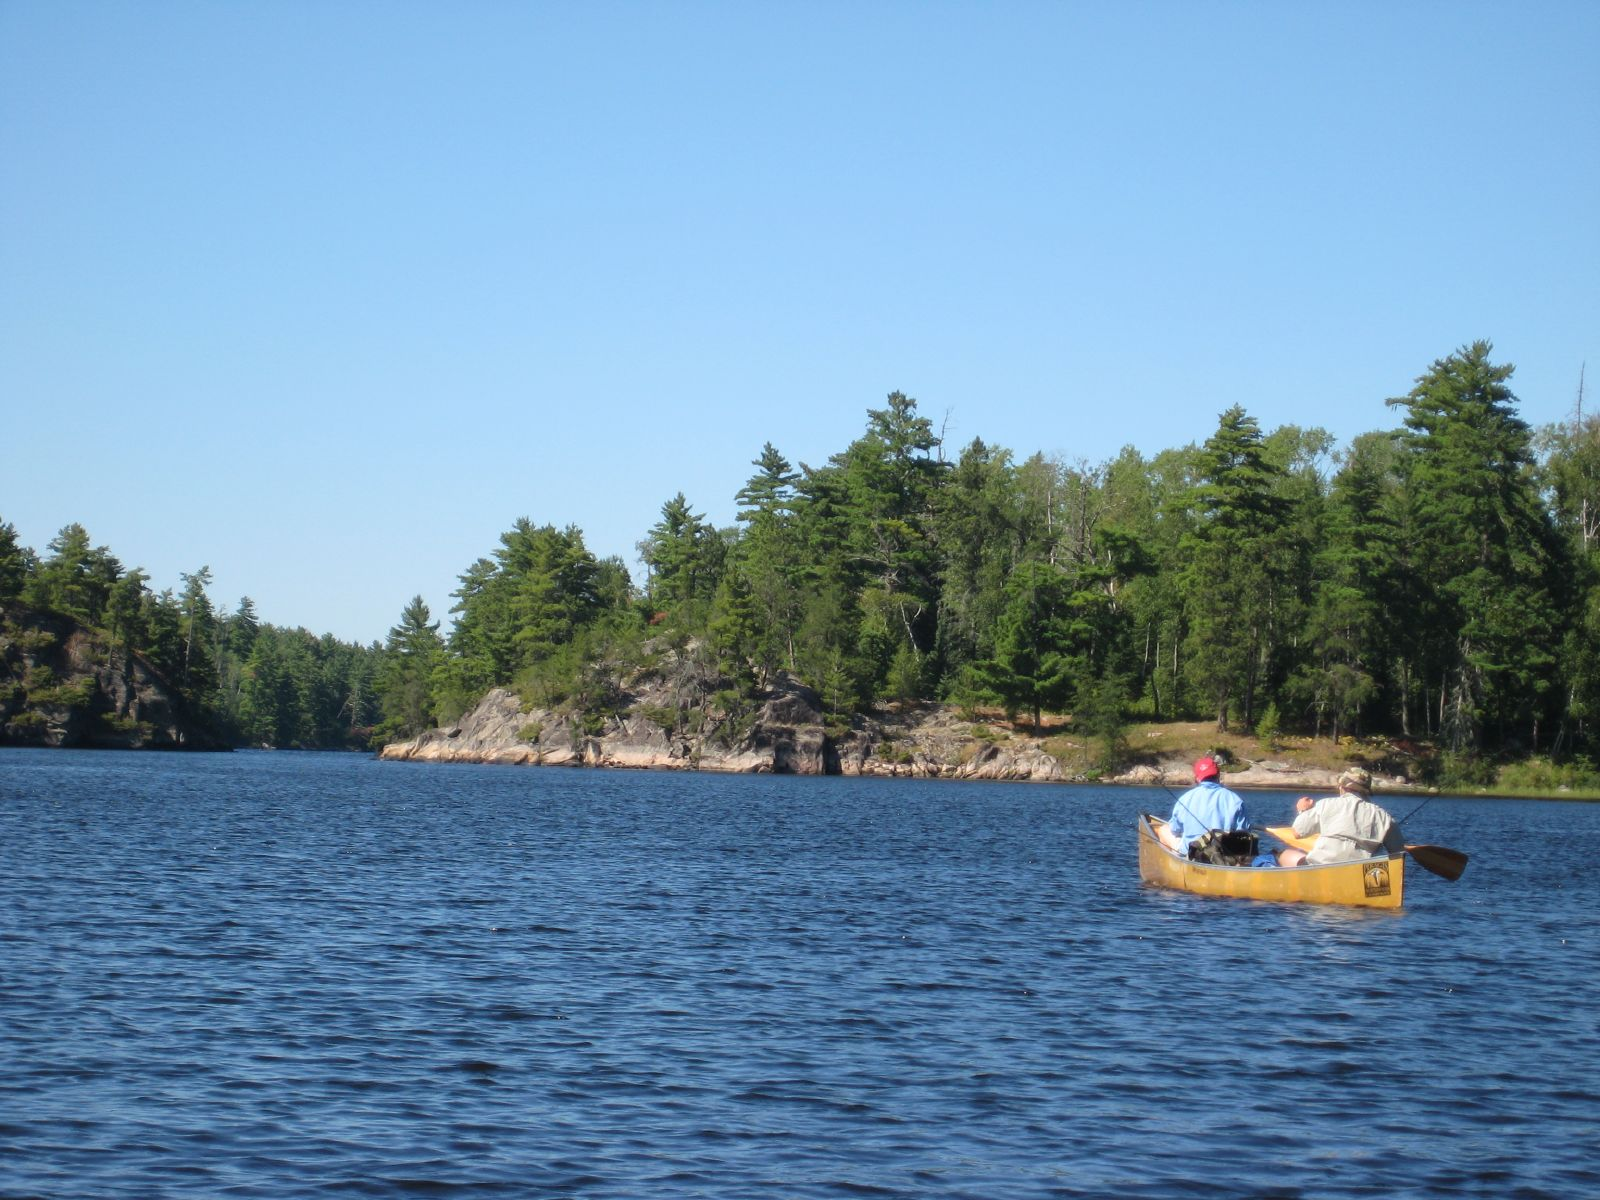 Canoeing in the Boundary Waters in Minnesota. Photo Credit: Greg Walters